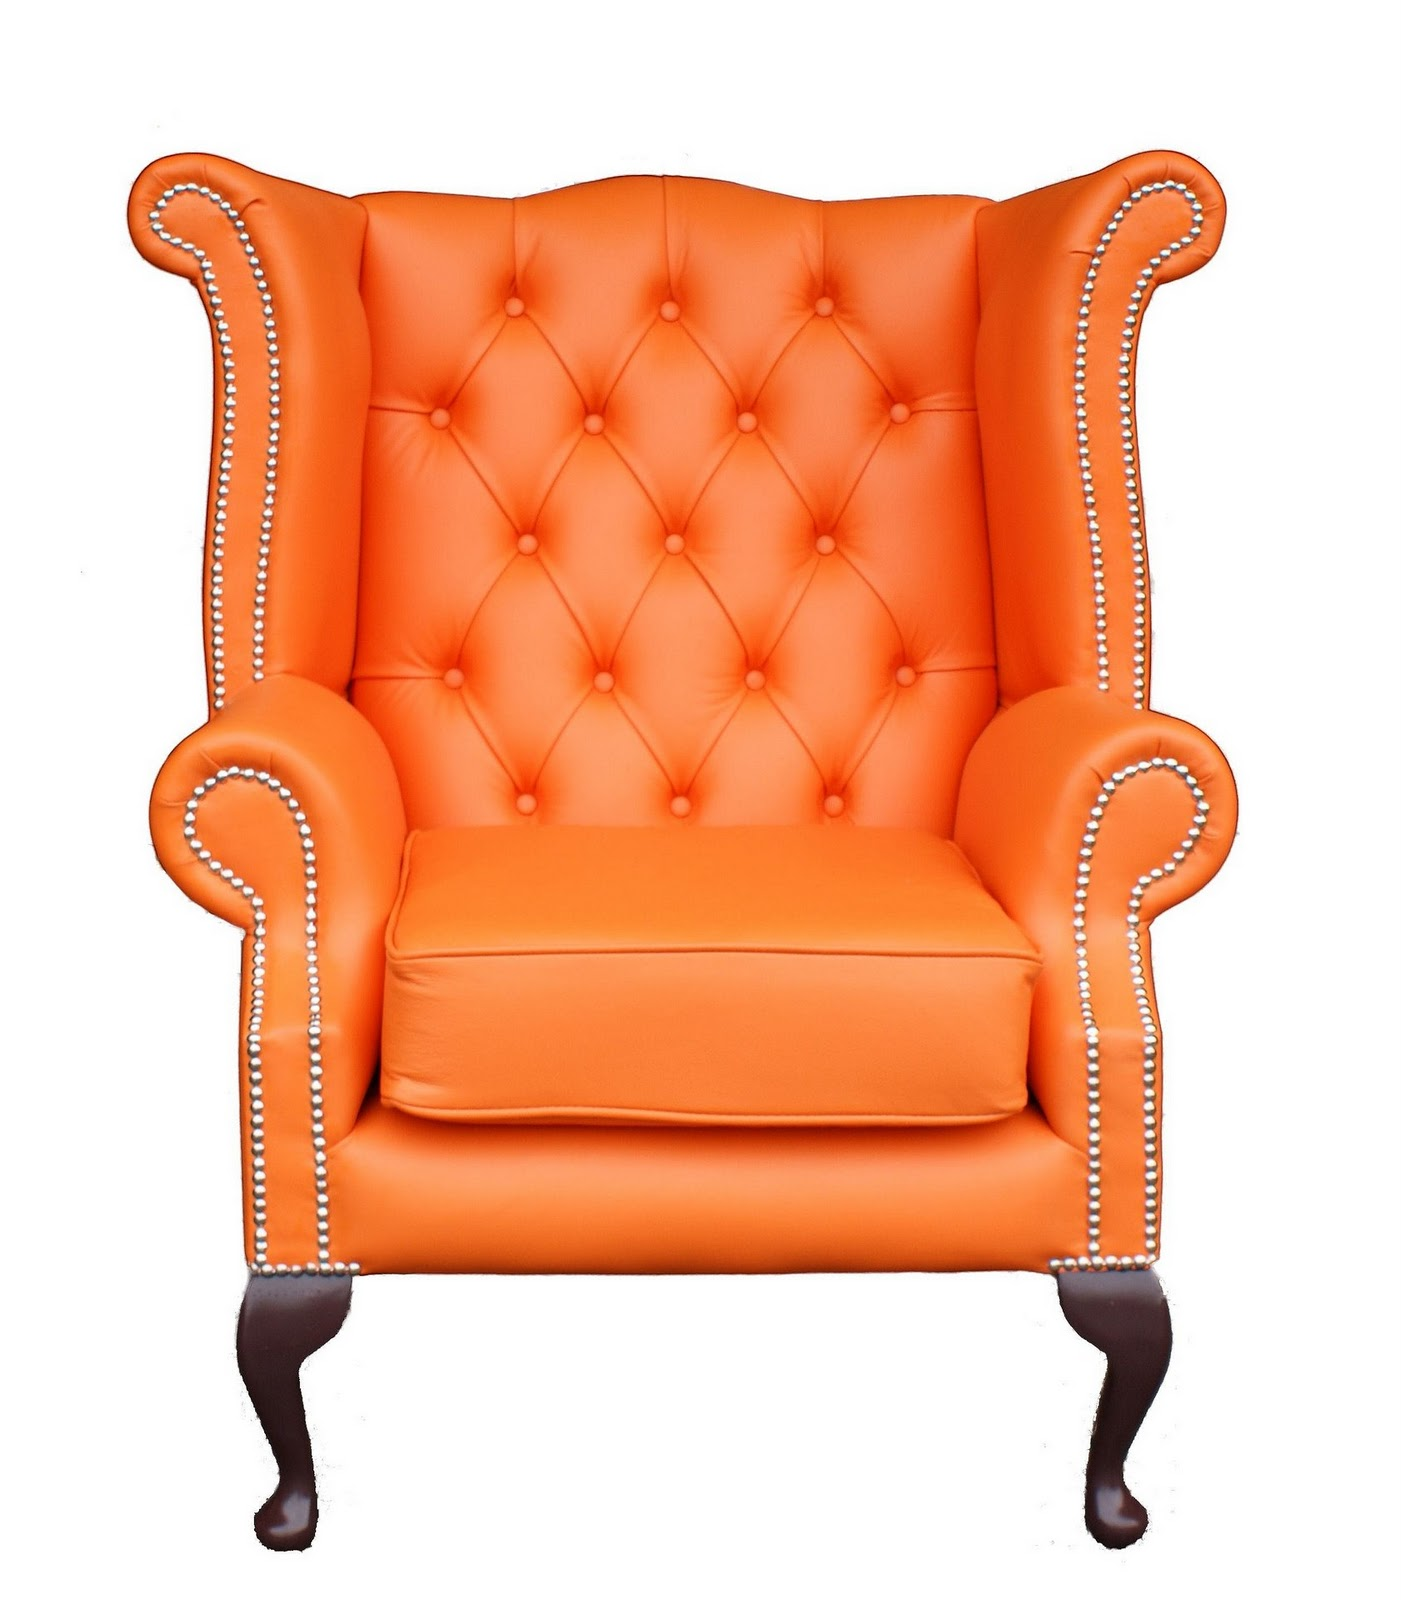 Orange Wingback Chair Orange The Pursuit Of Style